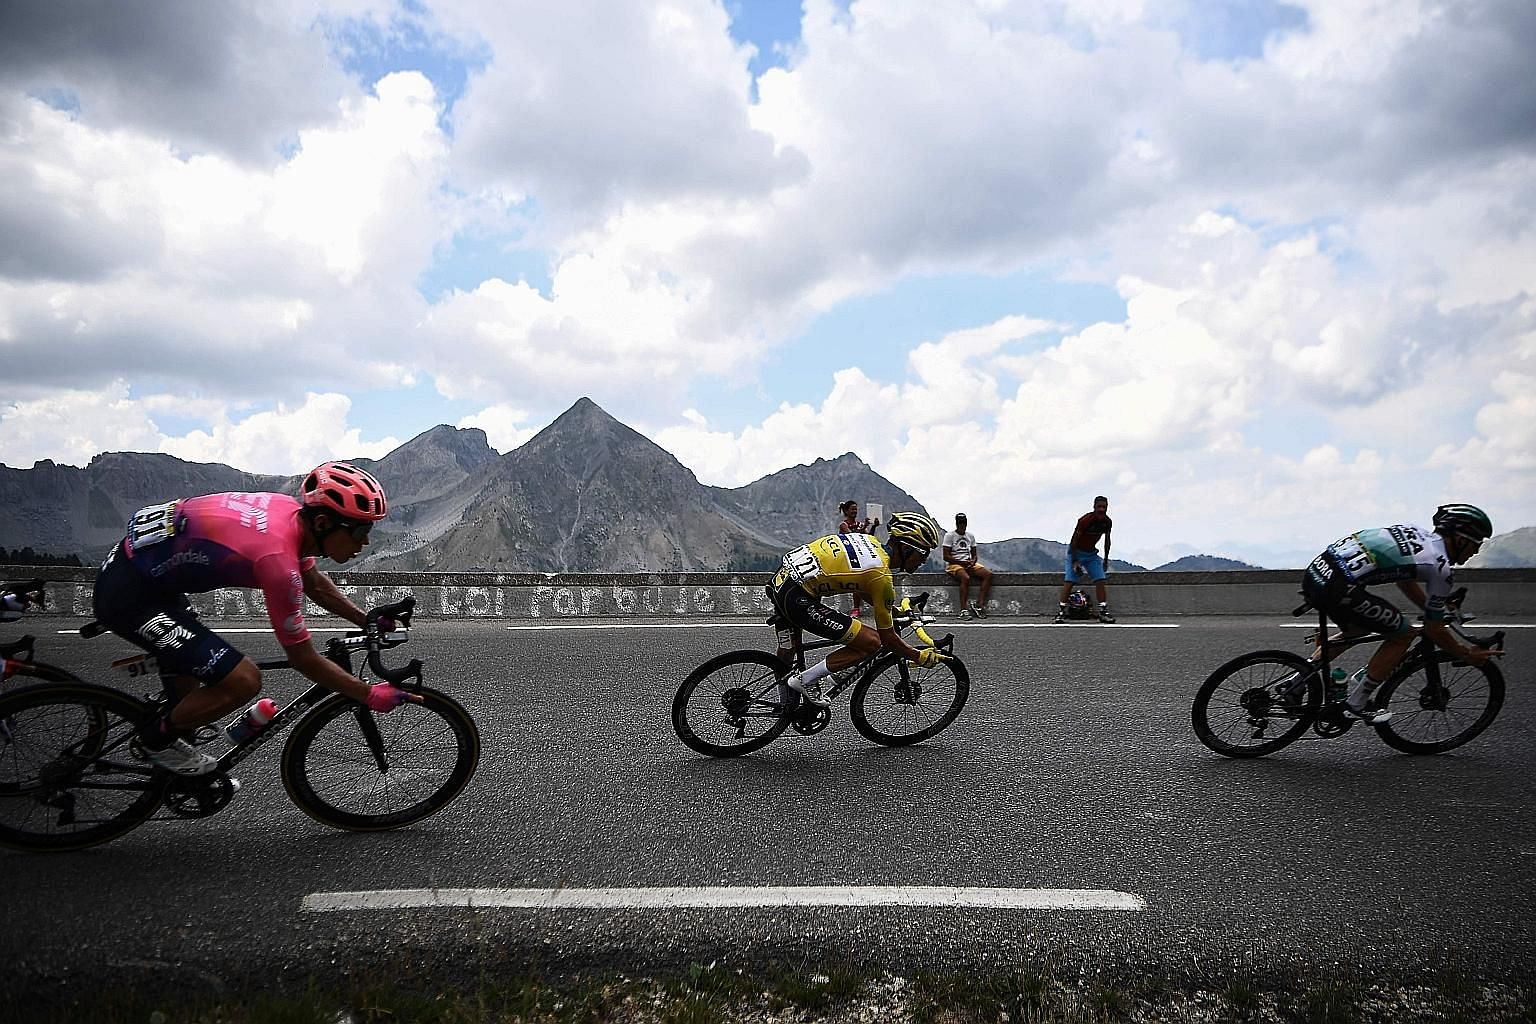 Julian Alaphilippe, in the yellow jersey, is sandwiched between Rigoberto Uran (left) and Gregor Muhlberger on a curve during the 18th stage of the Tour yesterday. PHOTO: AGENCE FRANCE-PRESSE